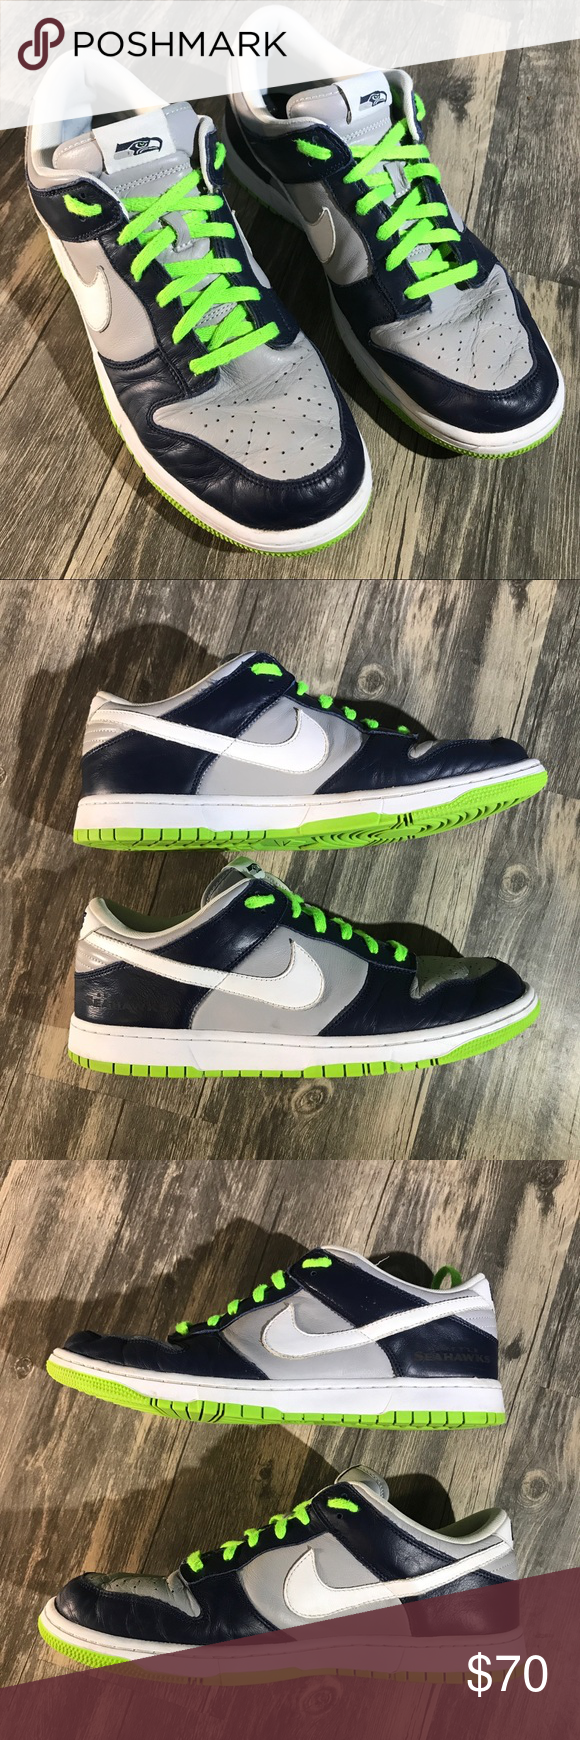 buy online 5a27e 34abd Nike Dunk Low ID Seattle Seahawks sneakers Size 13 Pre-owned (no box) Mens Nike  Dunk Low ID Seattle Seahawks sneakers. Size 13 Model Number 535081 - 901 ...